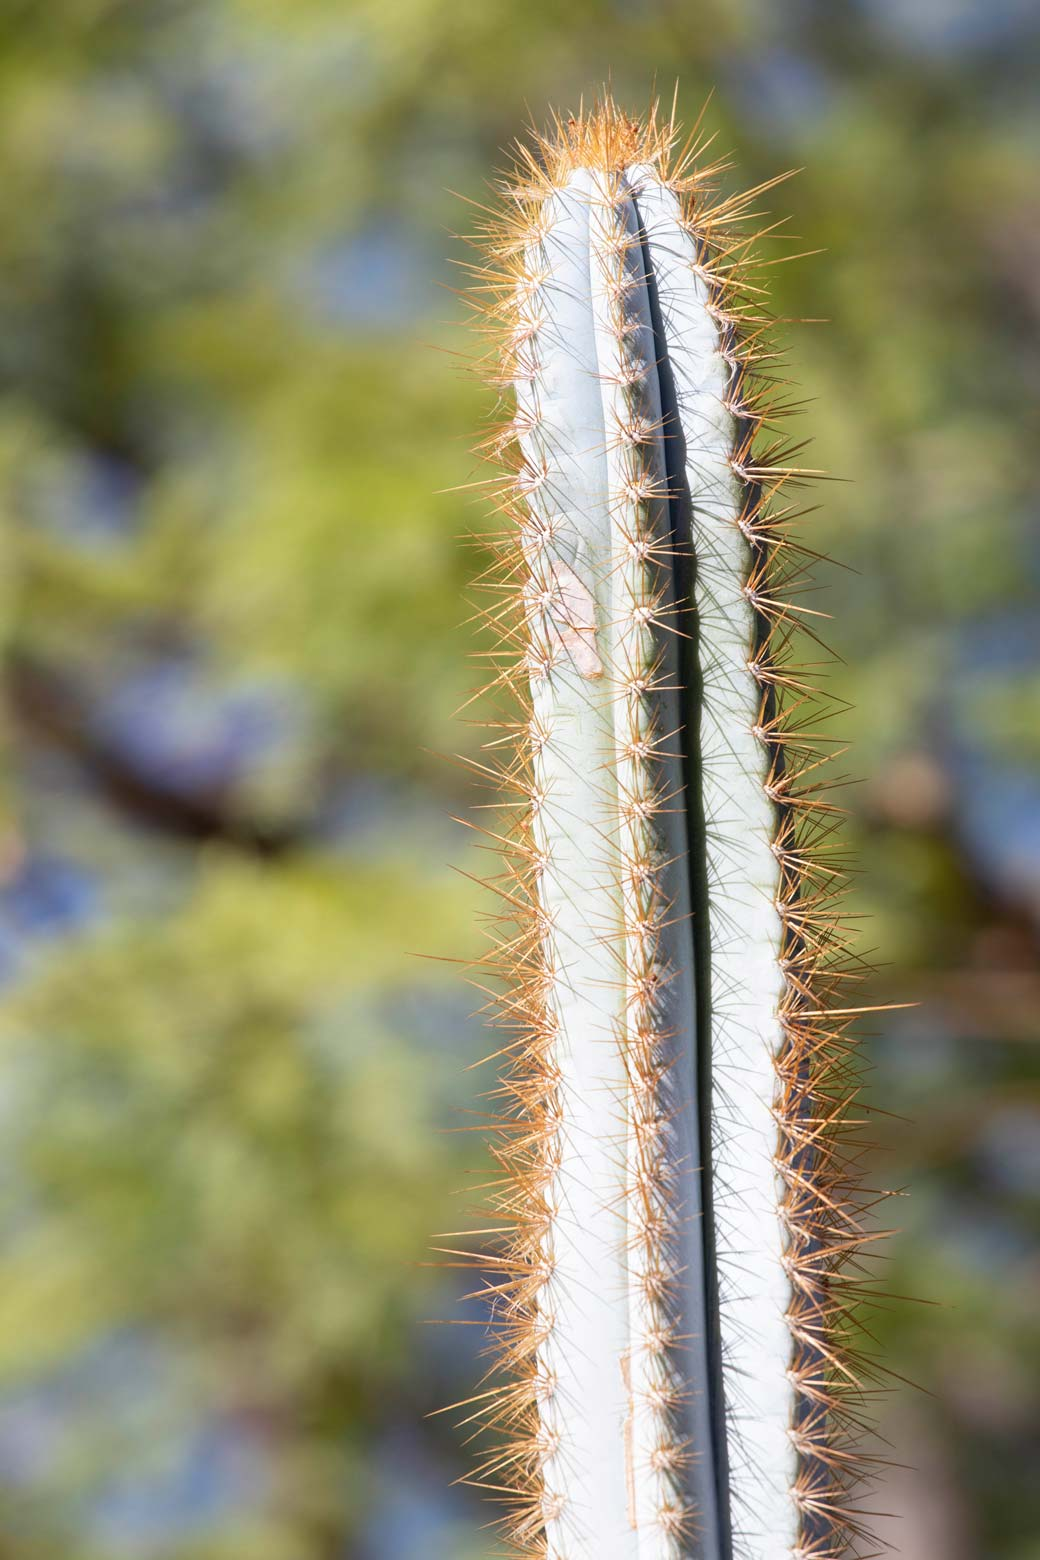 A close-up of the Blue Torch cactus.